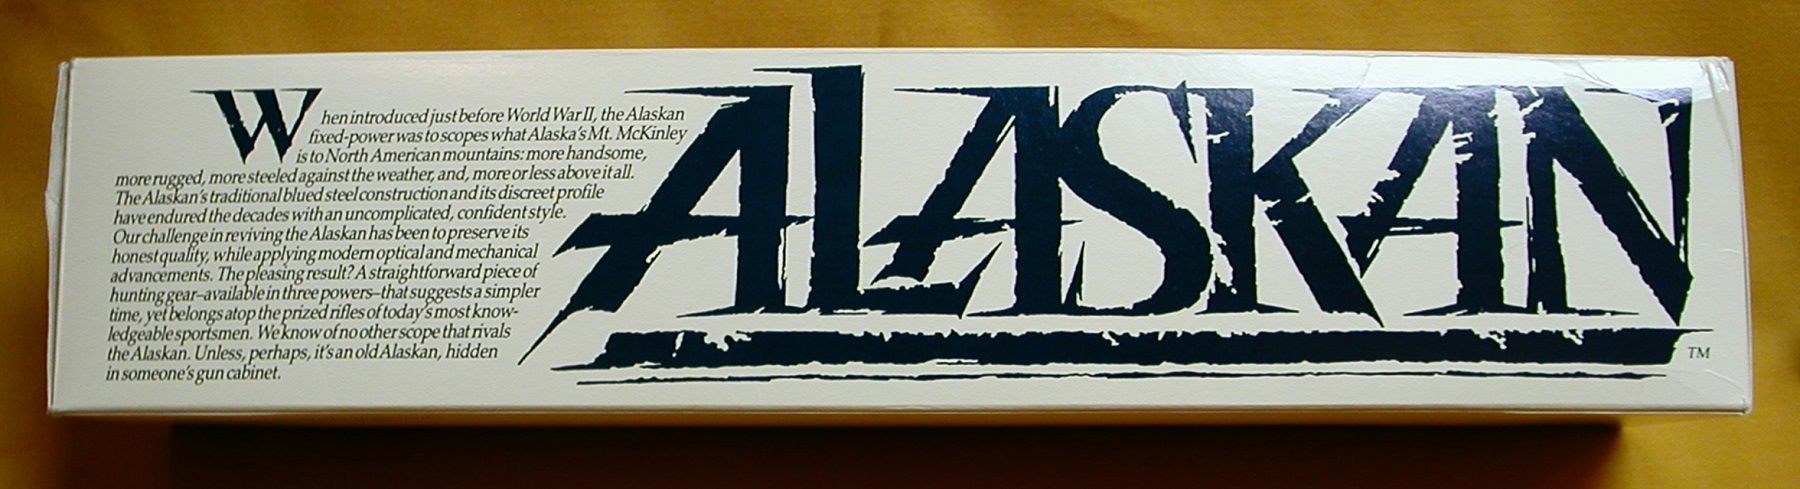 W000S100_Alaskan_Scope_Box.jpg